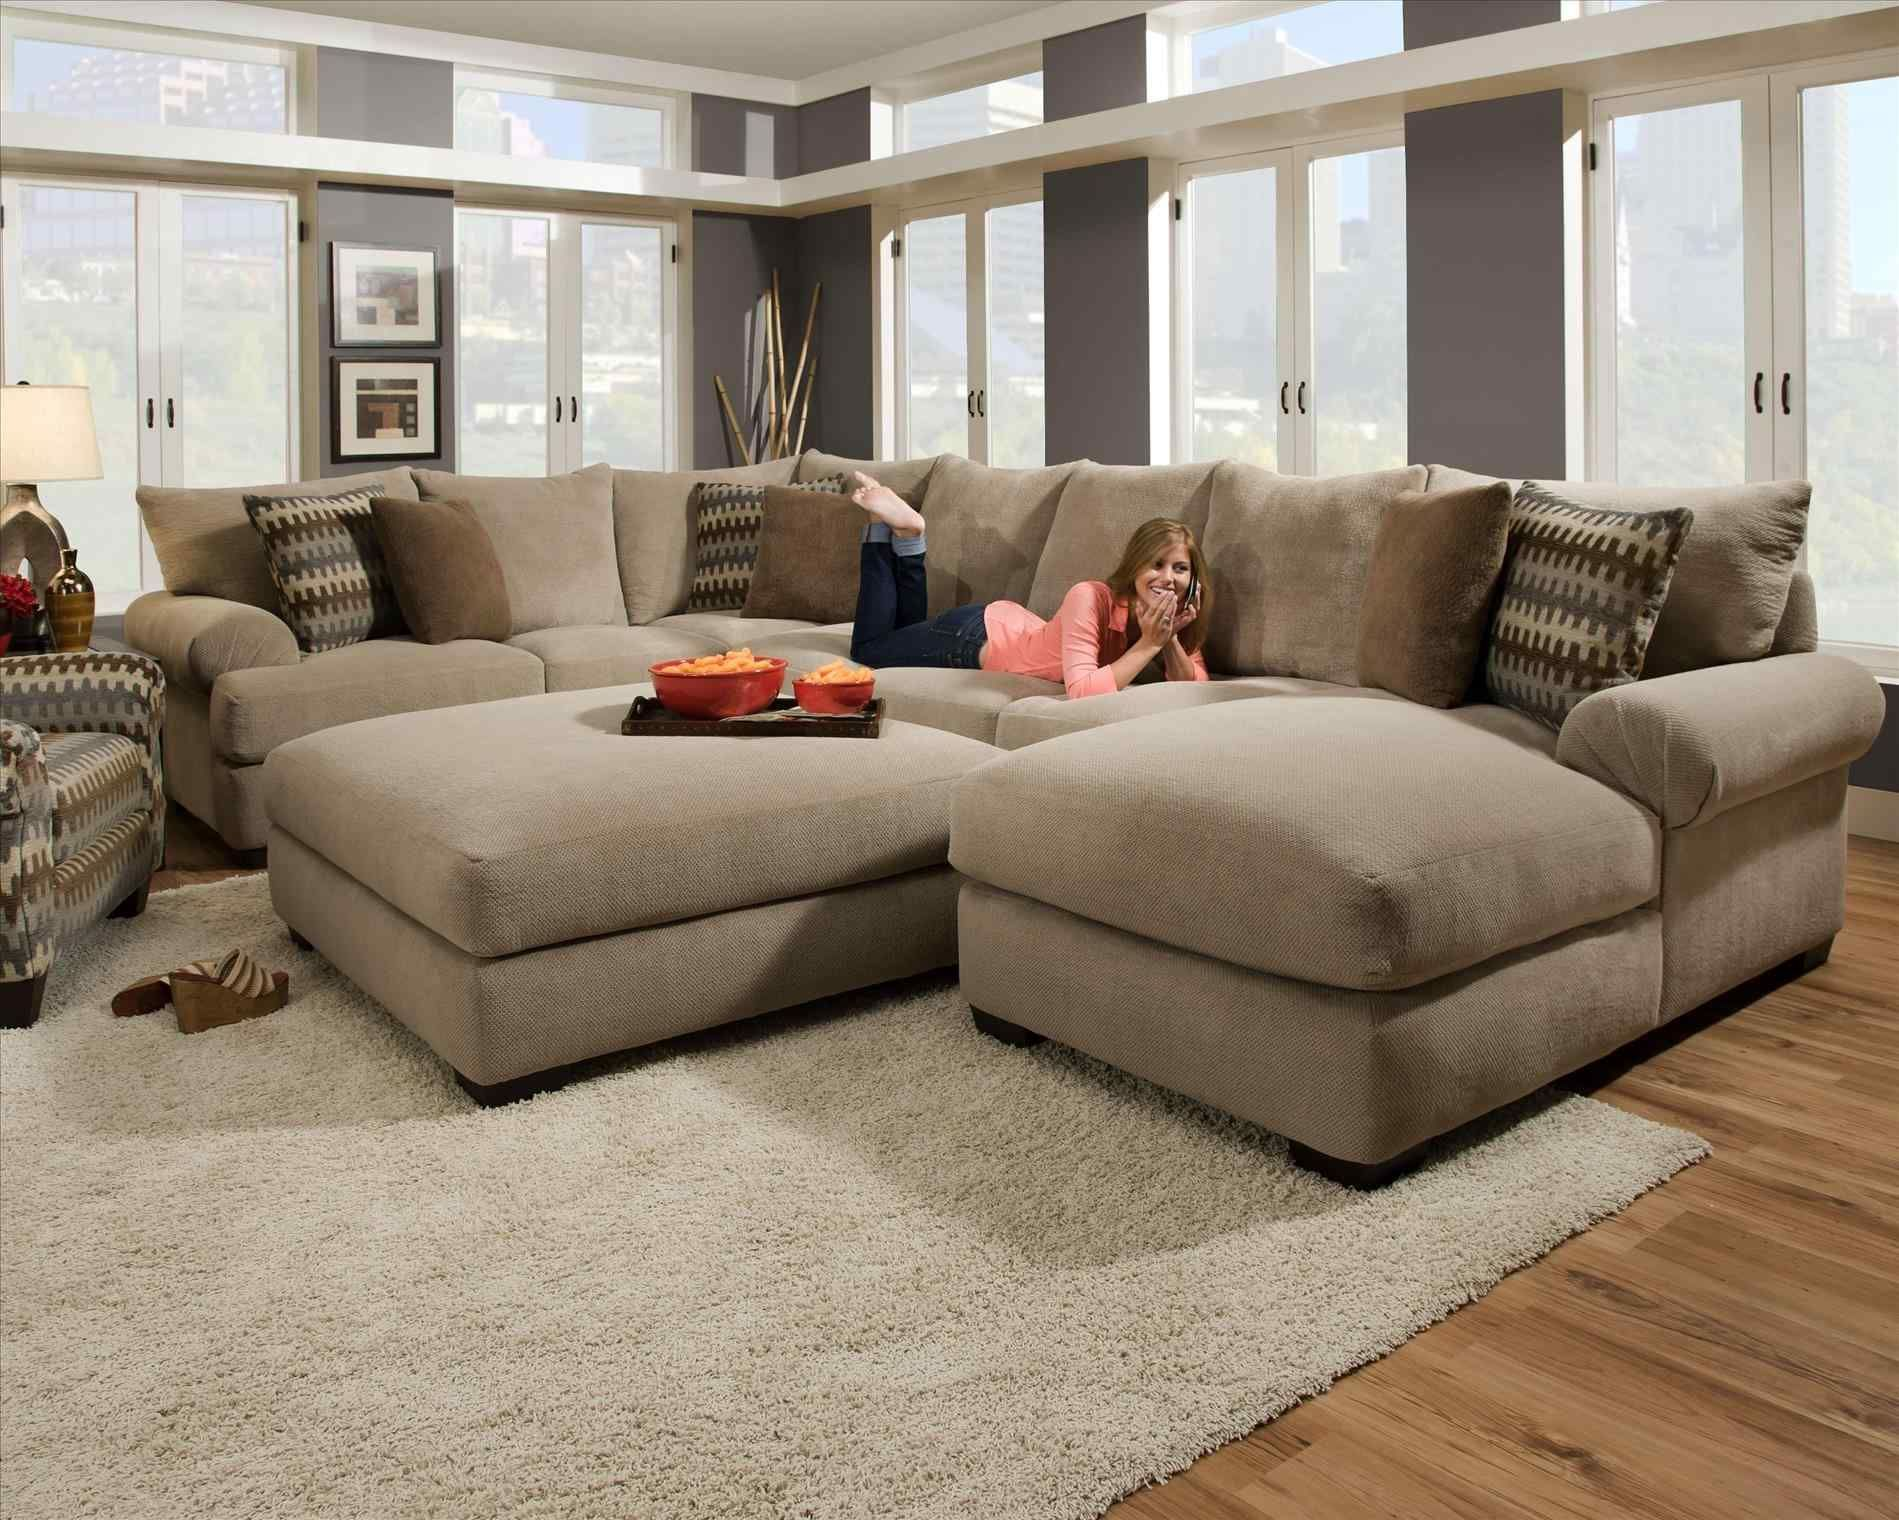 couches for living room design idea oversized u shaped ...